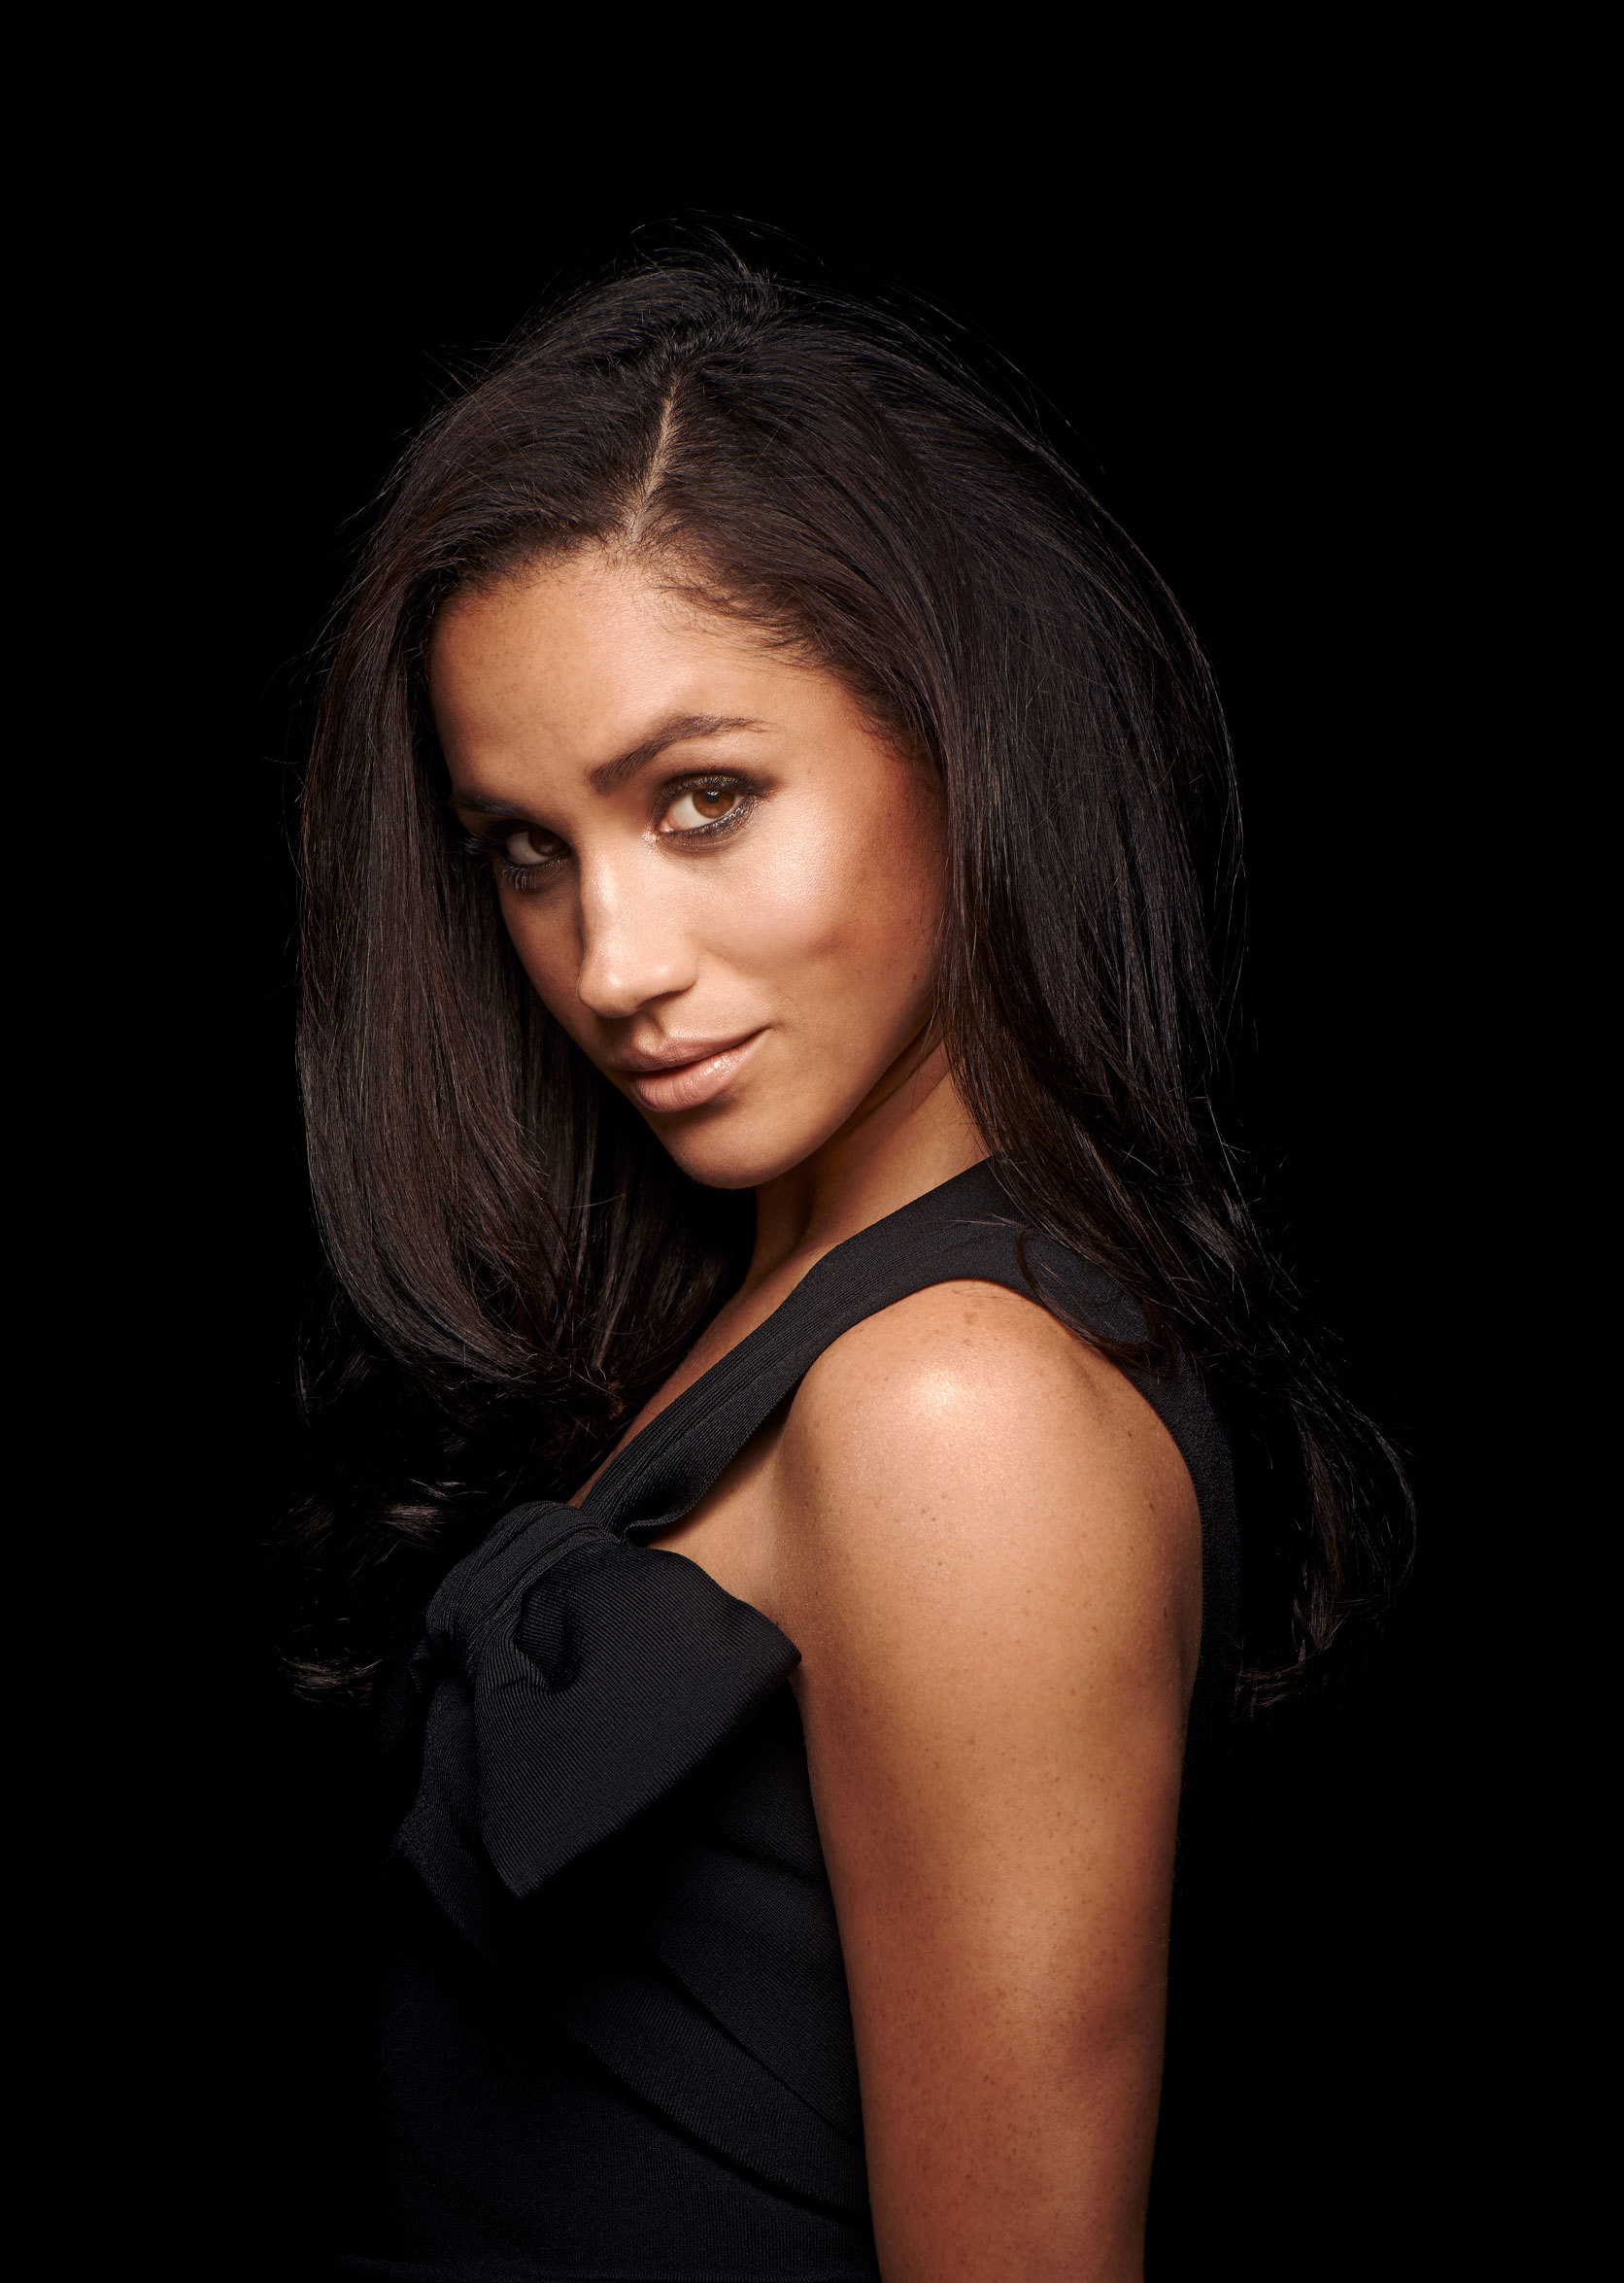 Meghan Markle Wallpapers Images Photos Pictures Backgrounds